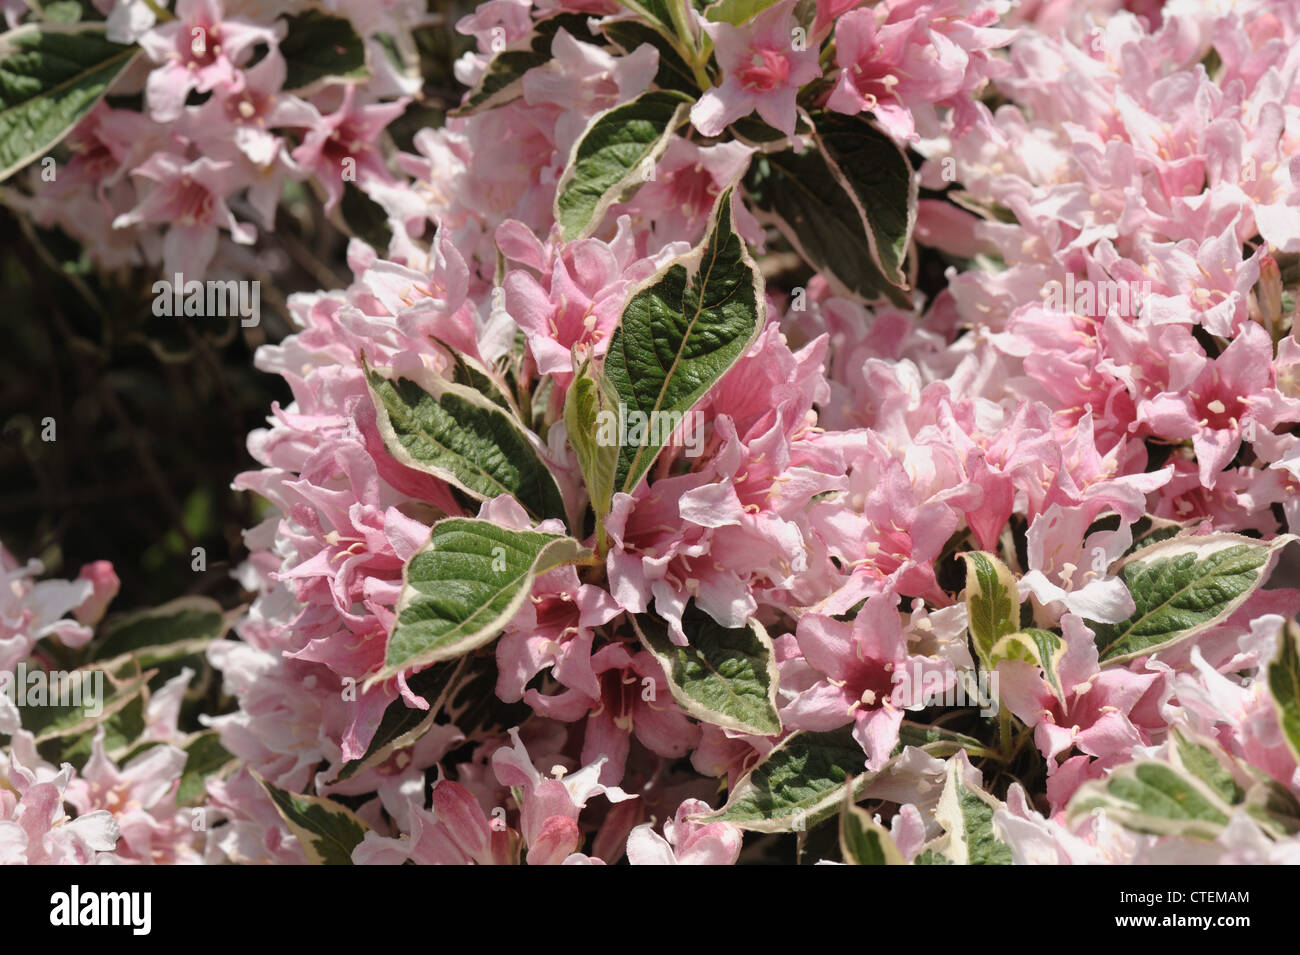 Variegated Shrub Stock Photos Variegated Shrub Stock Images Alamy